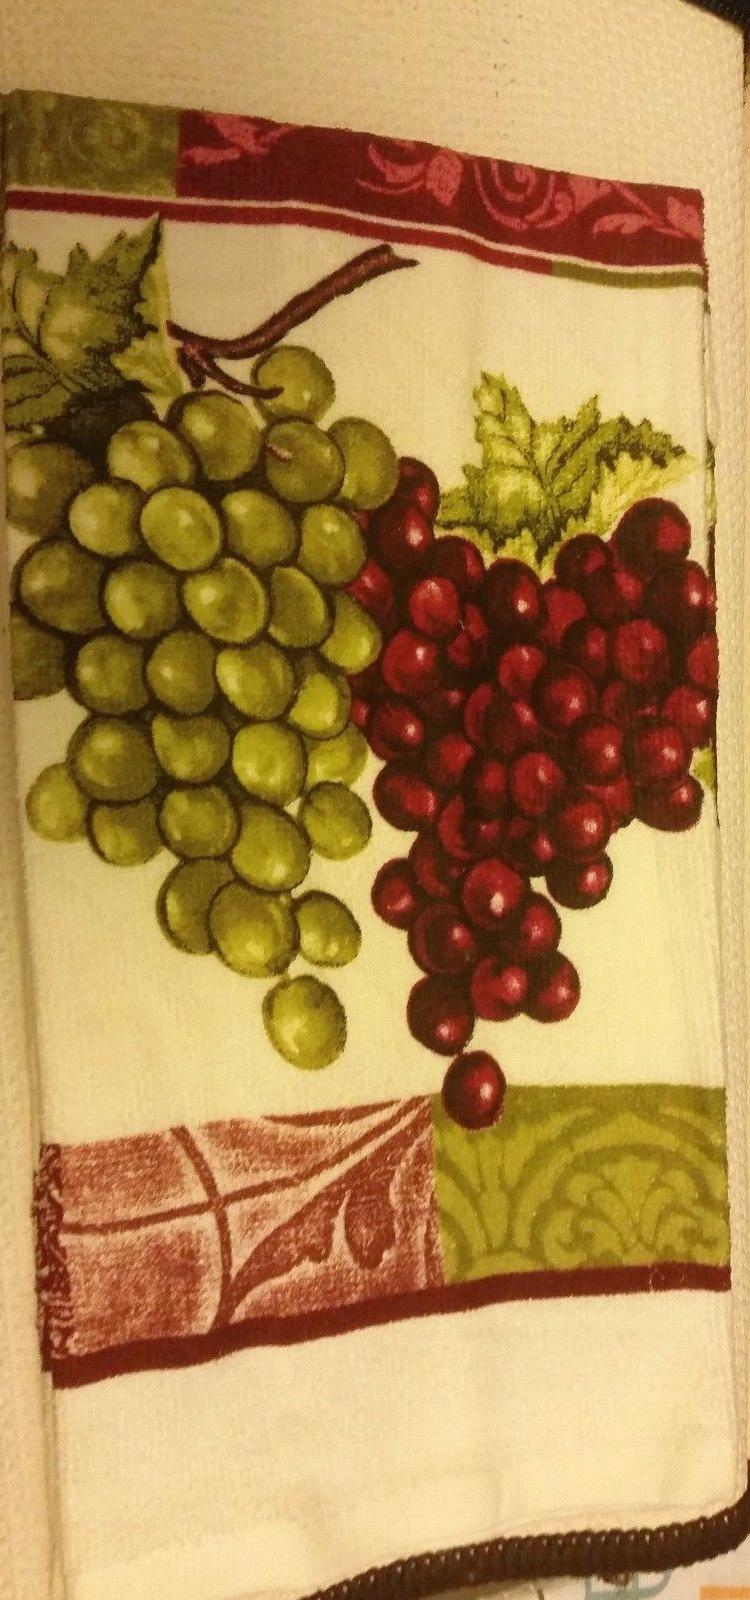 2 TOWELS RED & GRAPES